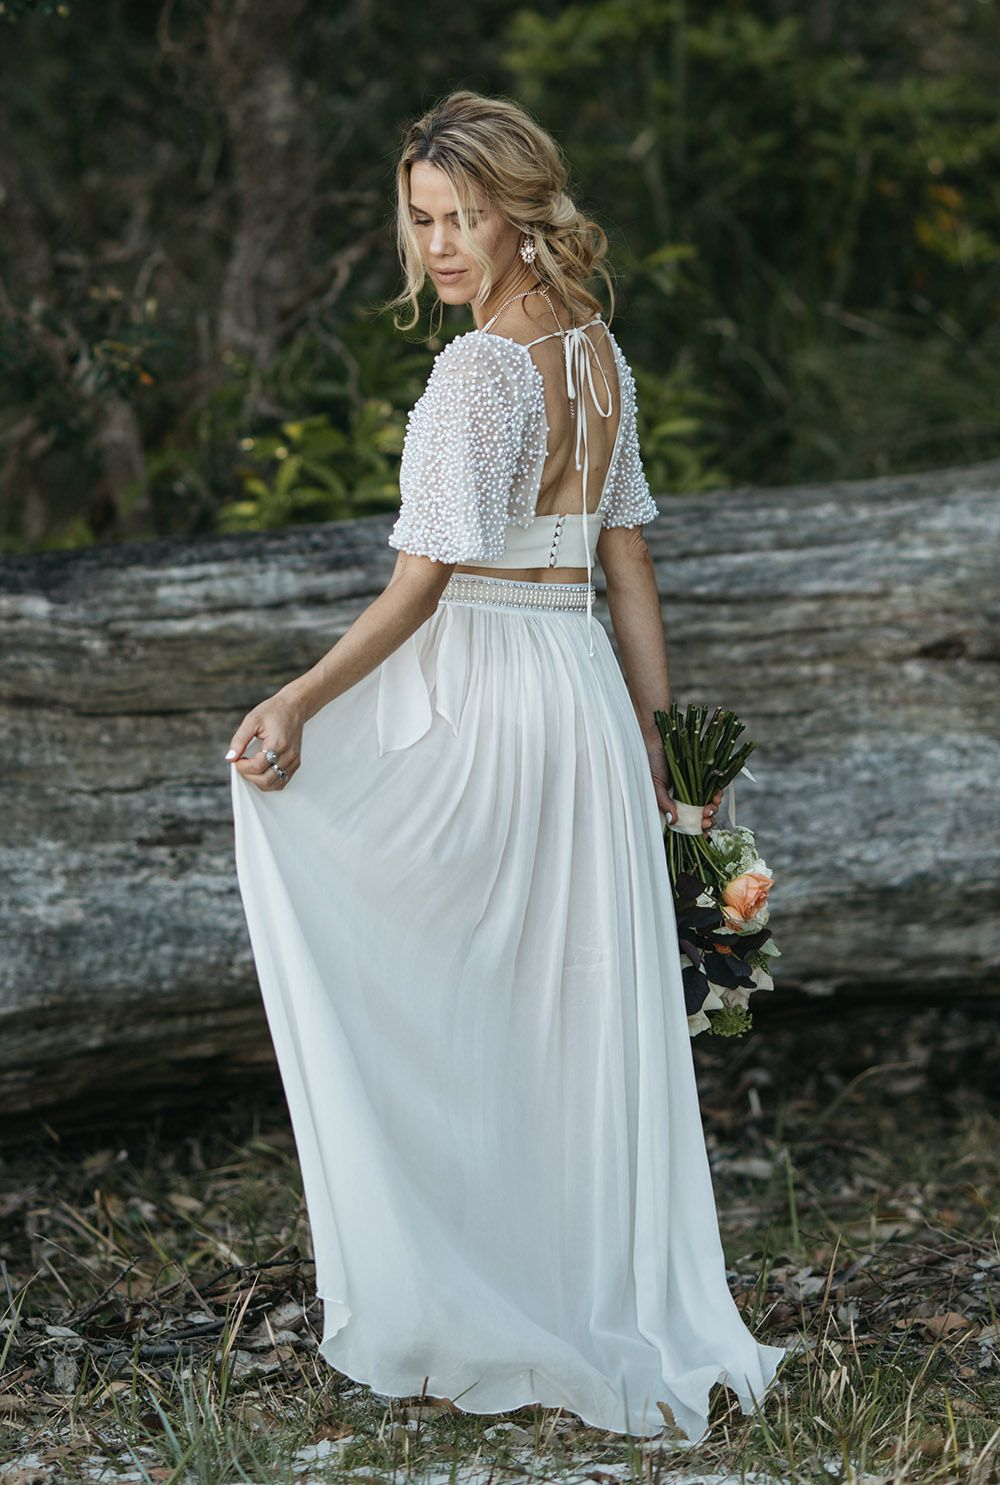 Modern wedding dresses for romantic, boho and beach weddings made ...